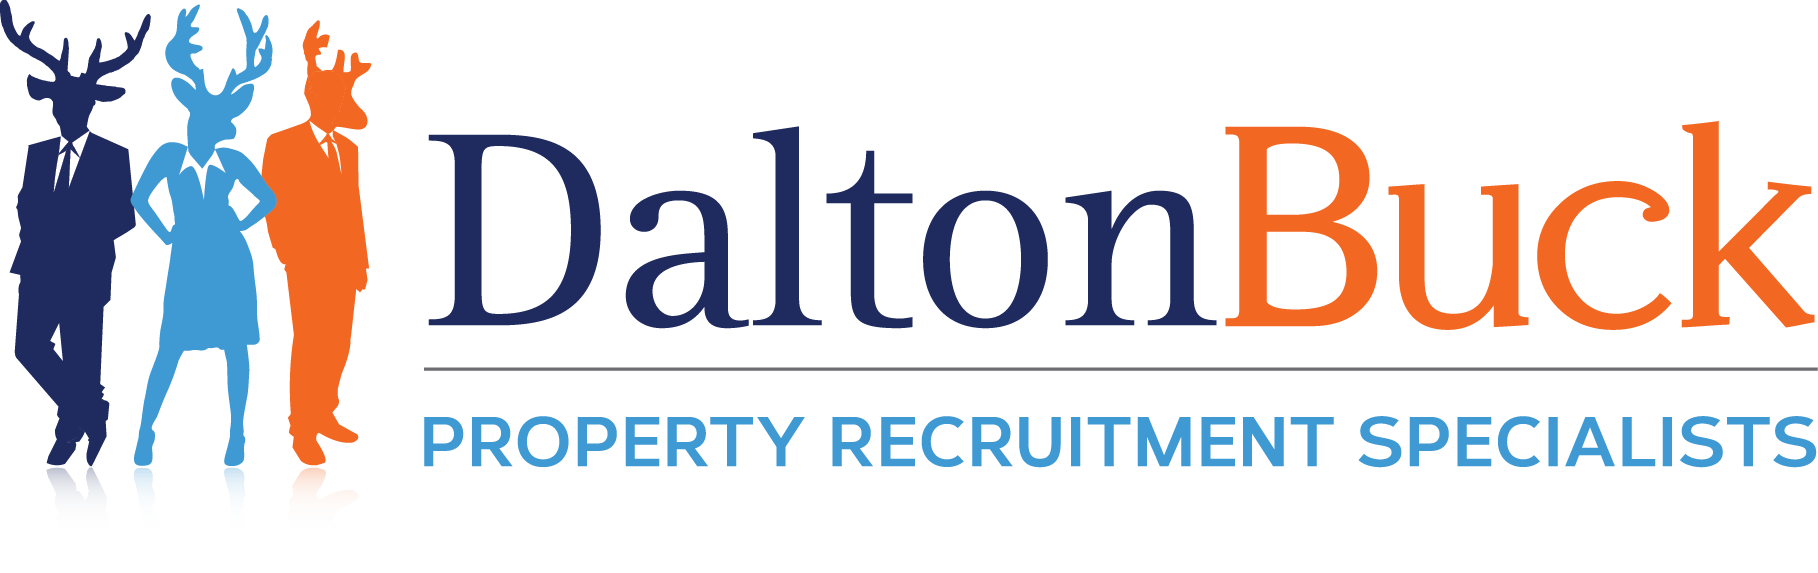 Property Recruitment Consultants